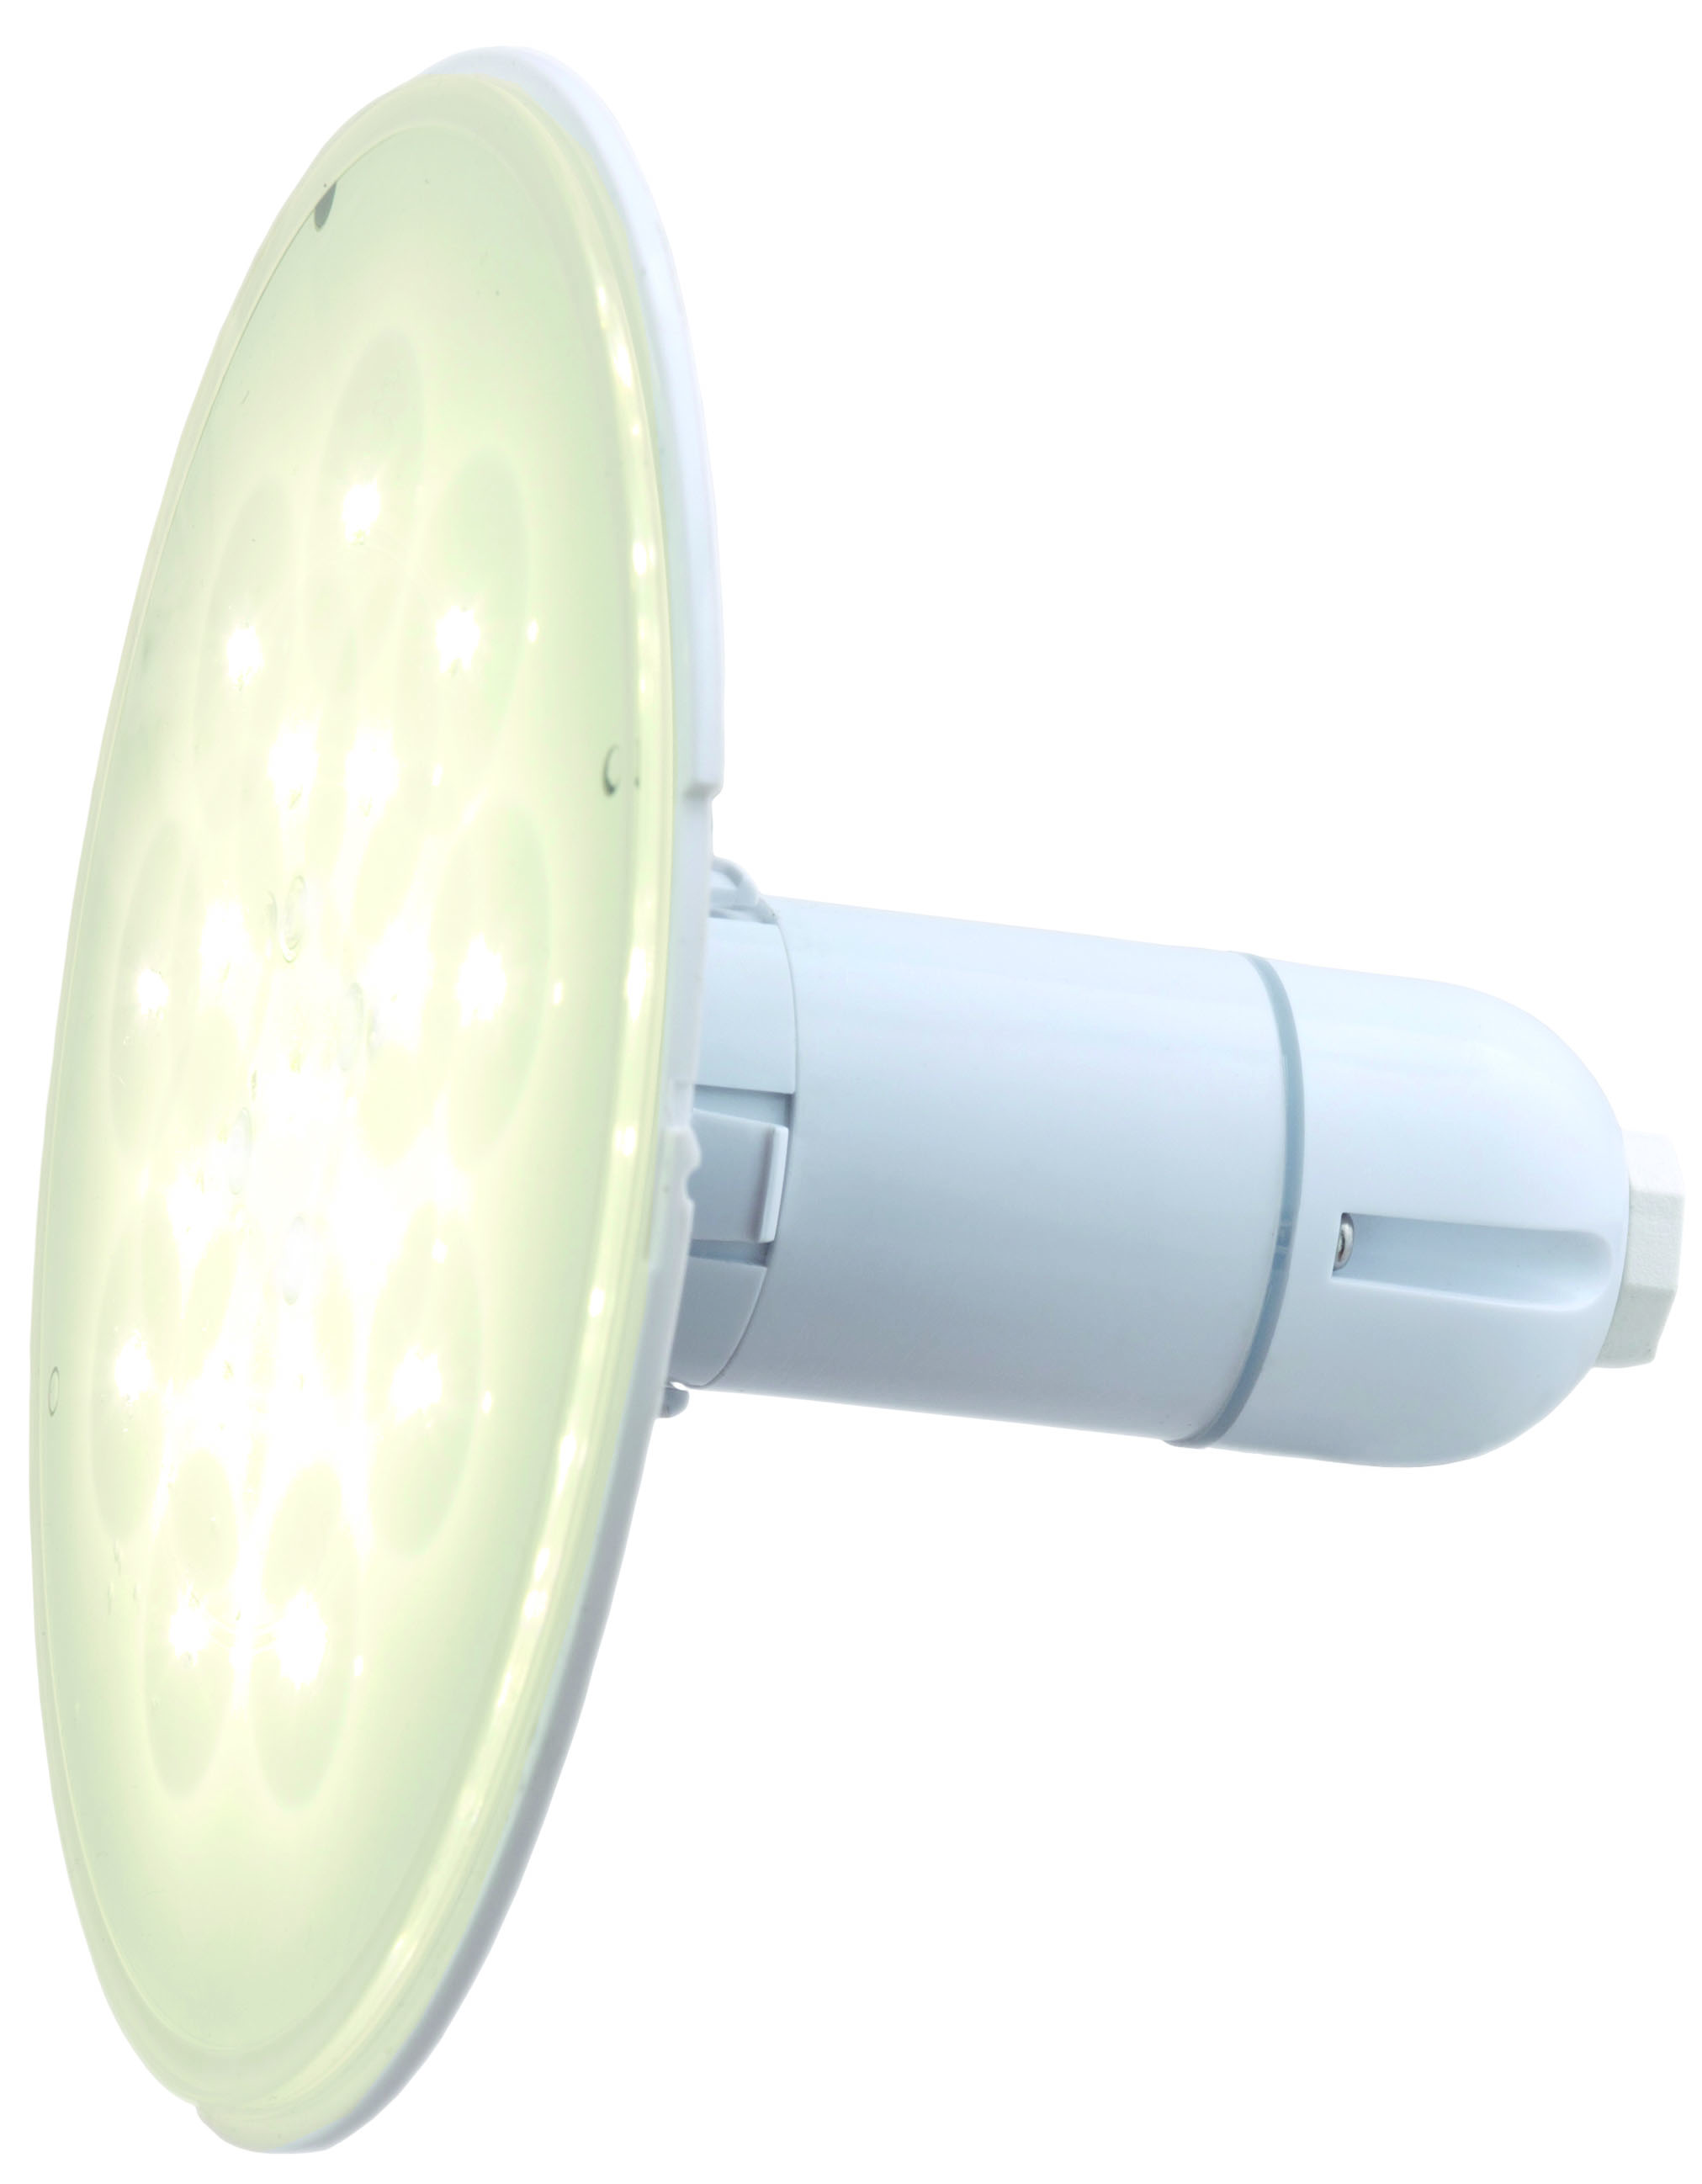 Adagio plus 170mm LED zwembadlamp 50W 3200lm warm wit